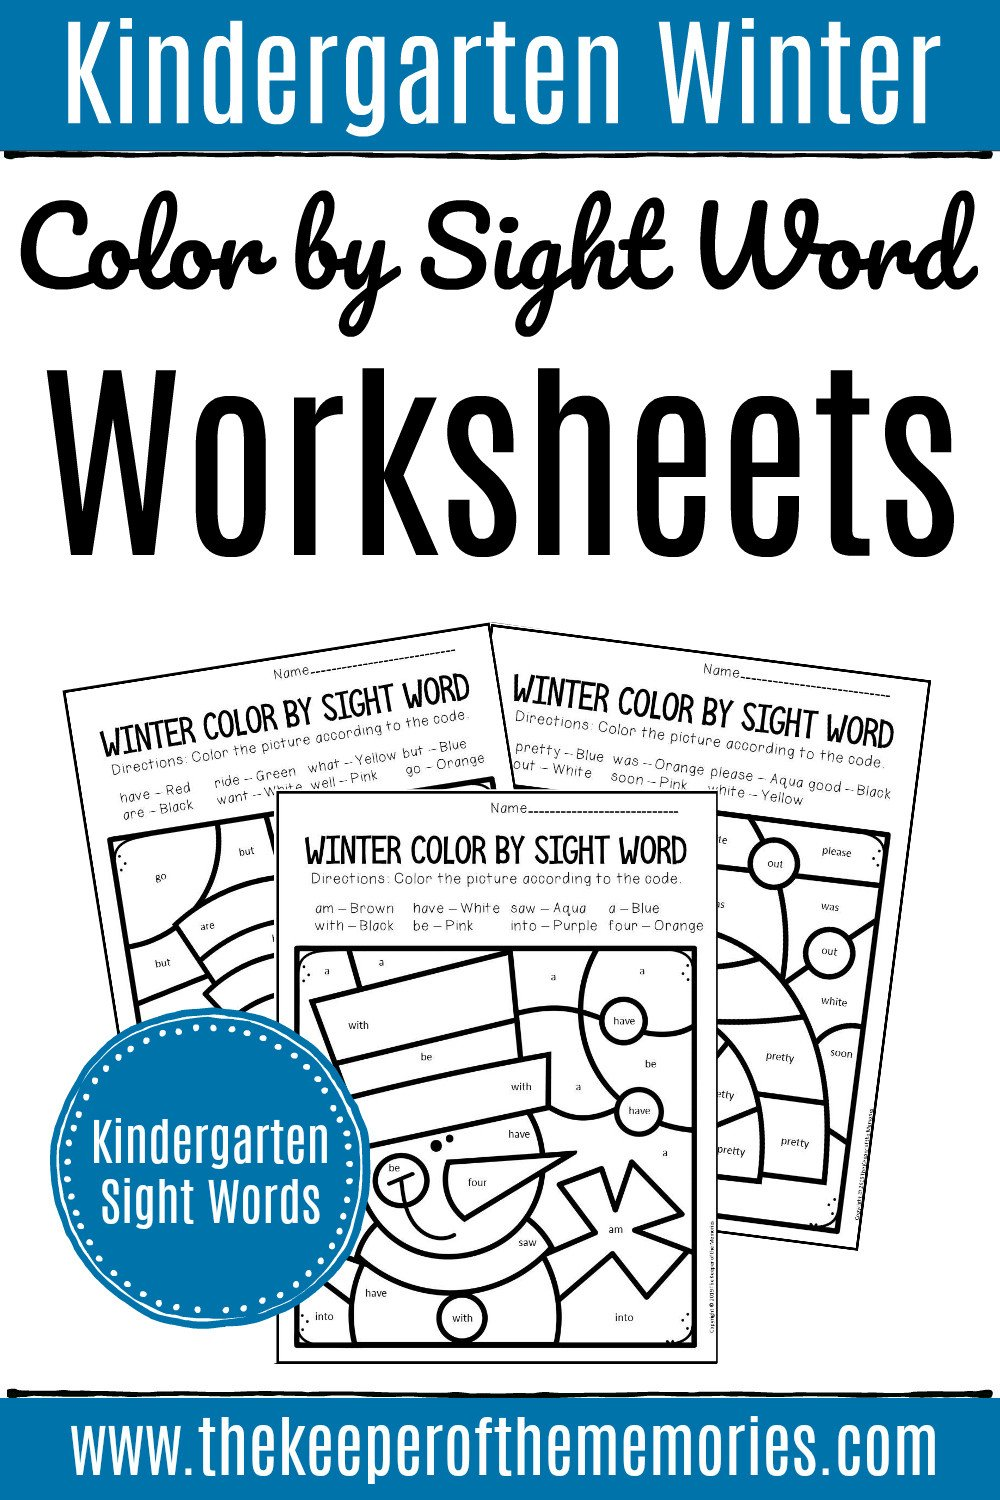 Color Word Worksheets for Kindergarten Color by Sight Word Winter Kindergarten Worksheets the